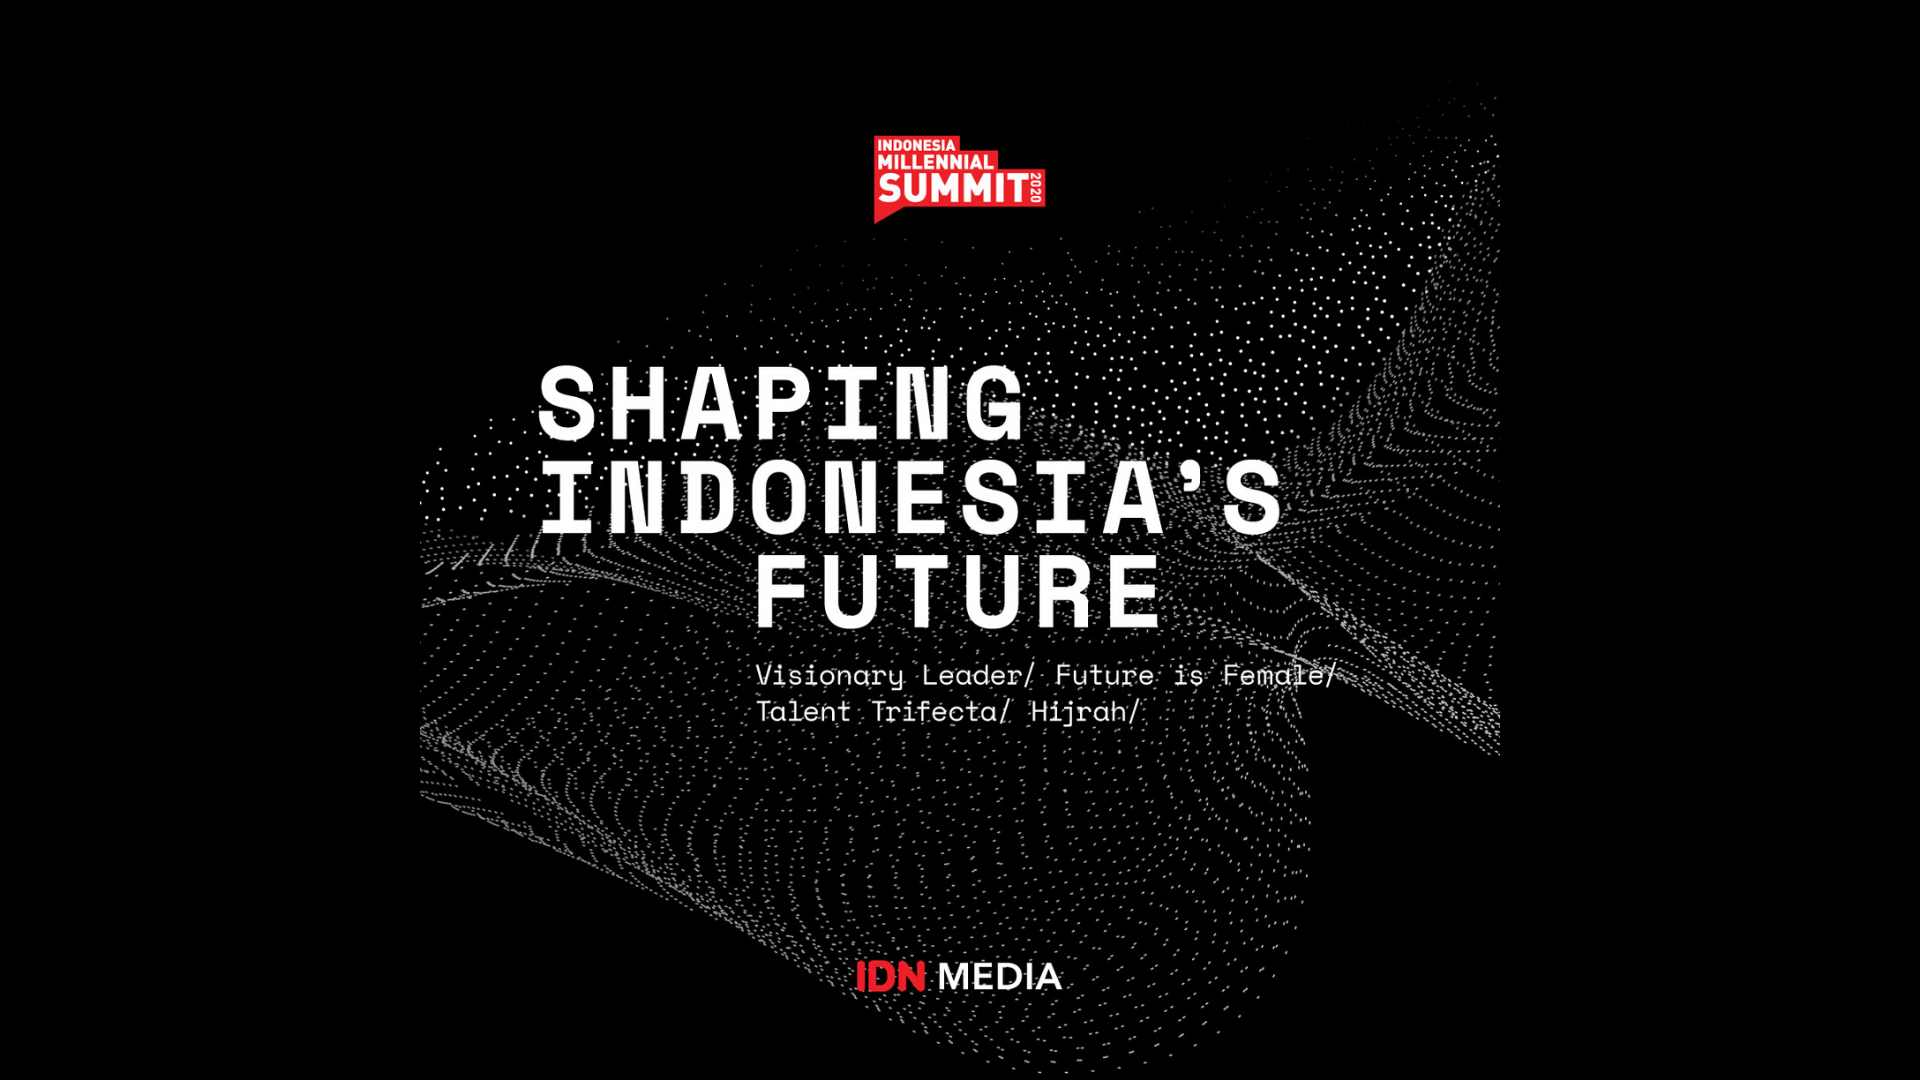 Indonesia Millennial Summit 2020: 2nd Line-Up for the Speakers, We are Shaping Indonesia's Future